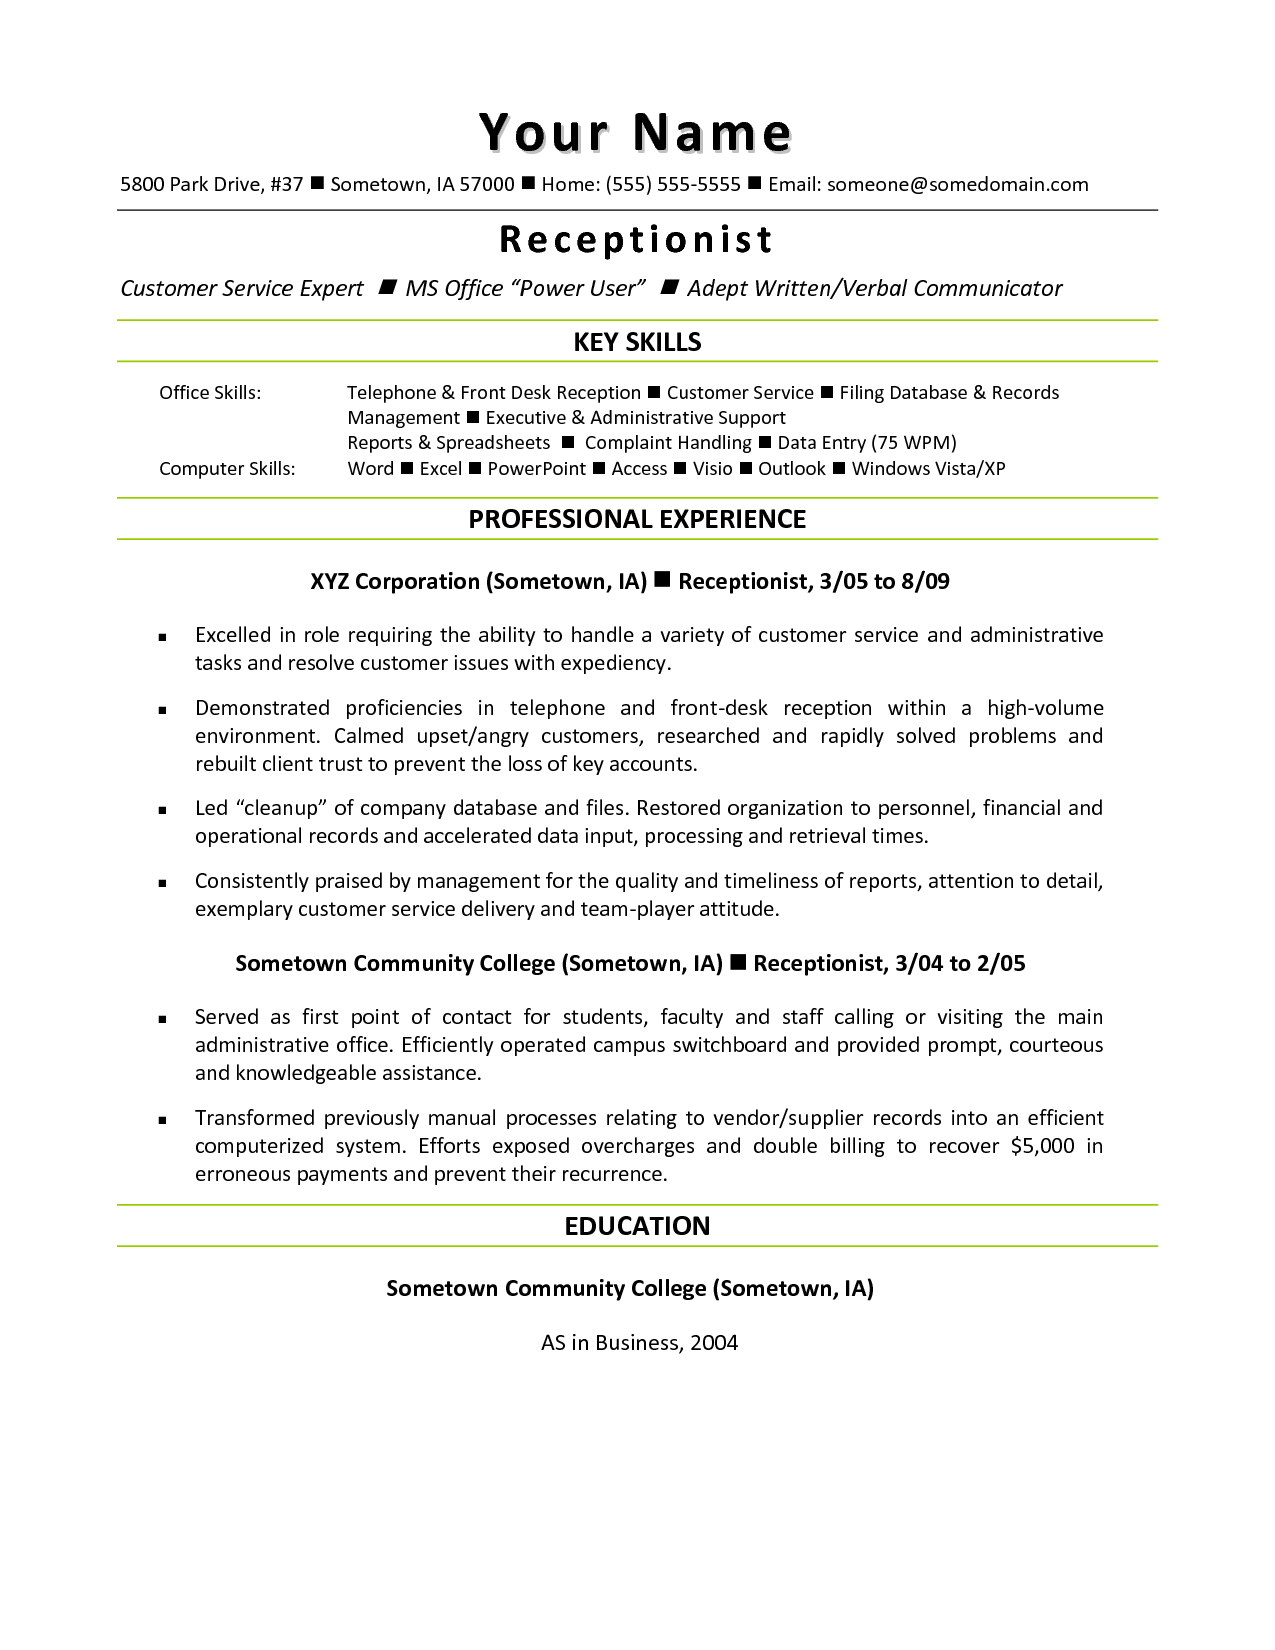 Receptionist Resume Sample Skills Oklmindsproutco  Sample Skills Resume